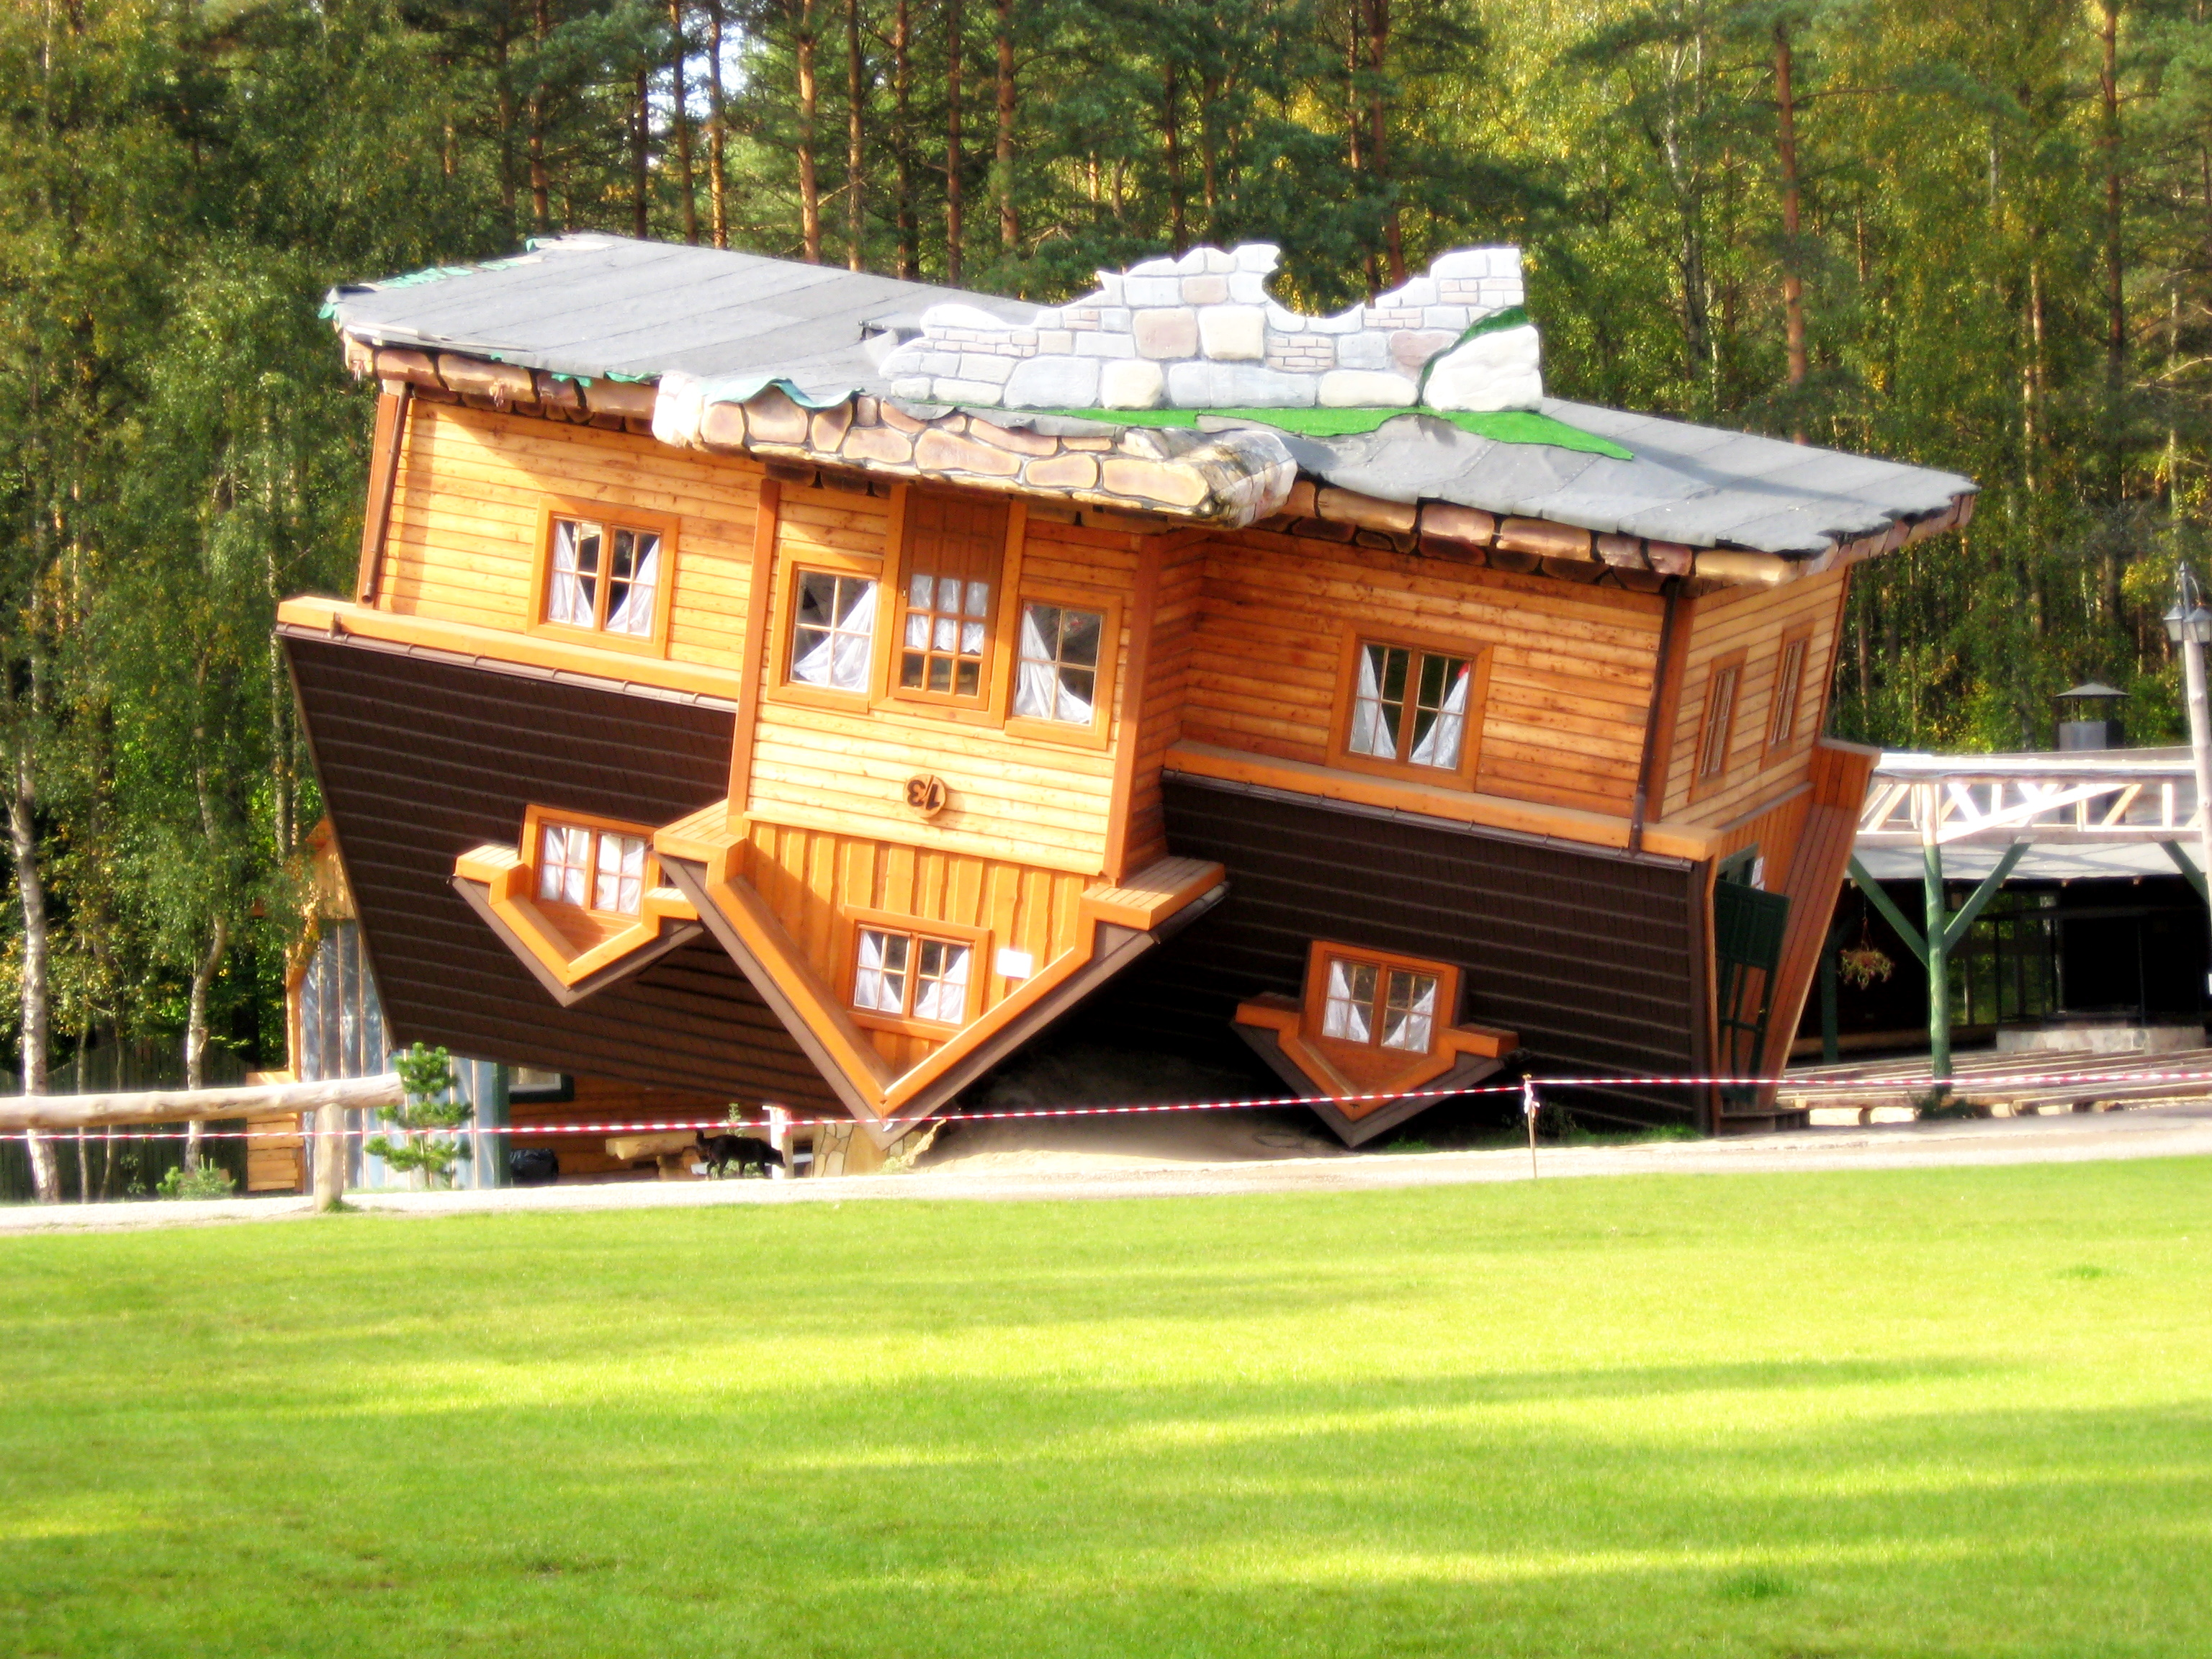 File An 39 Upside Down House 39 In Open Air Museum Szybmark